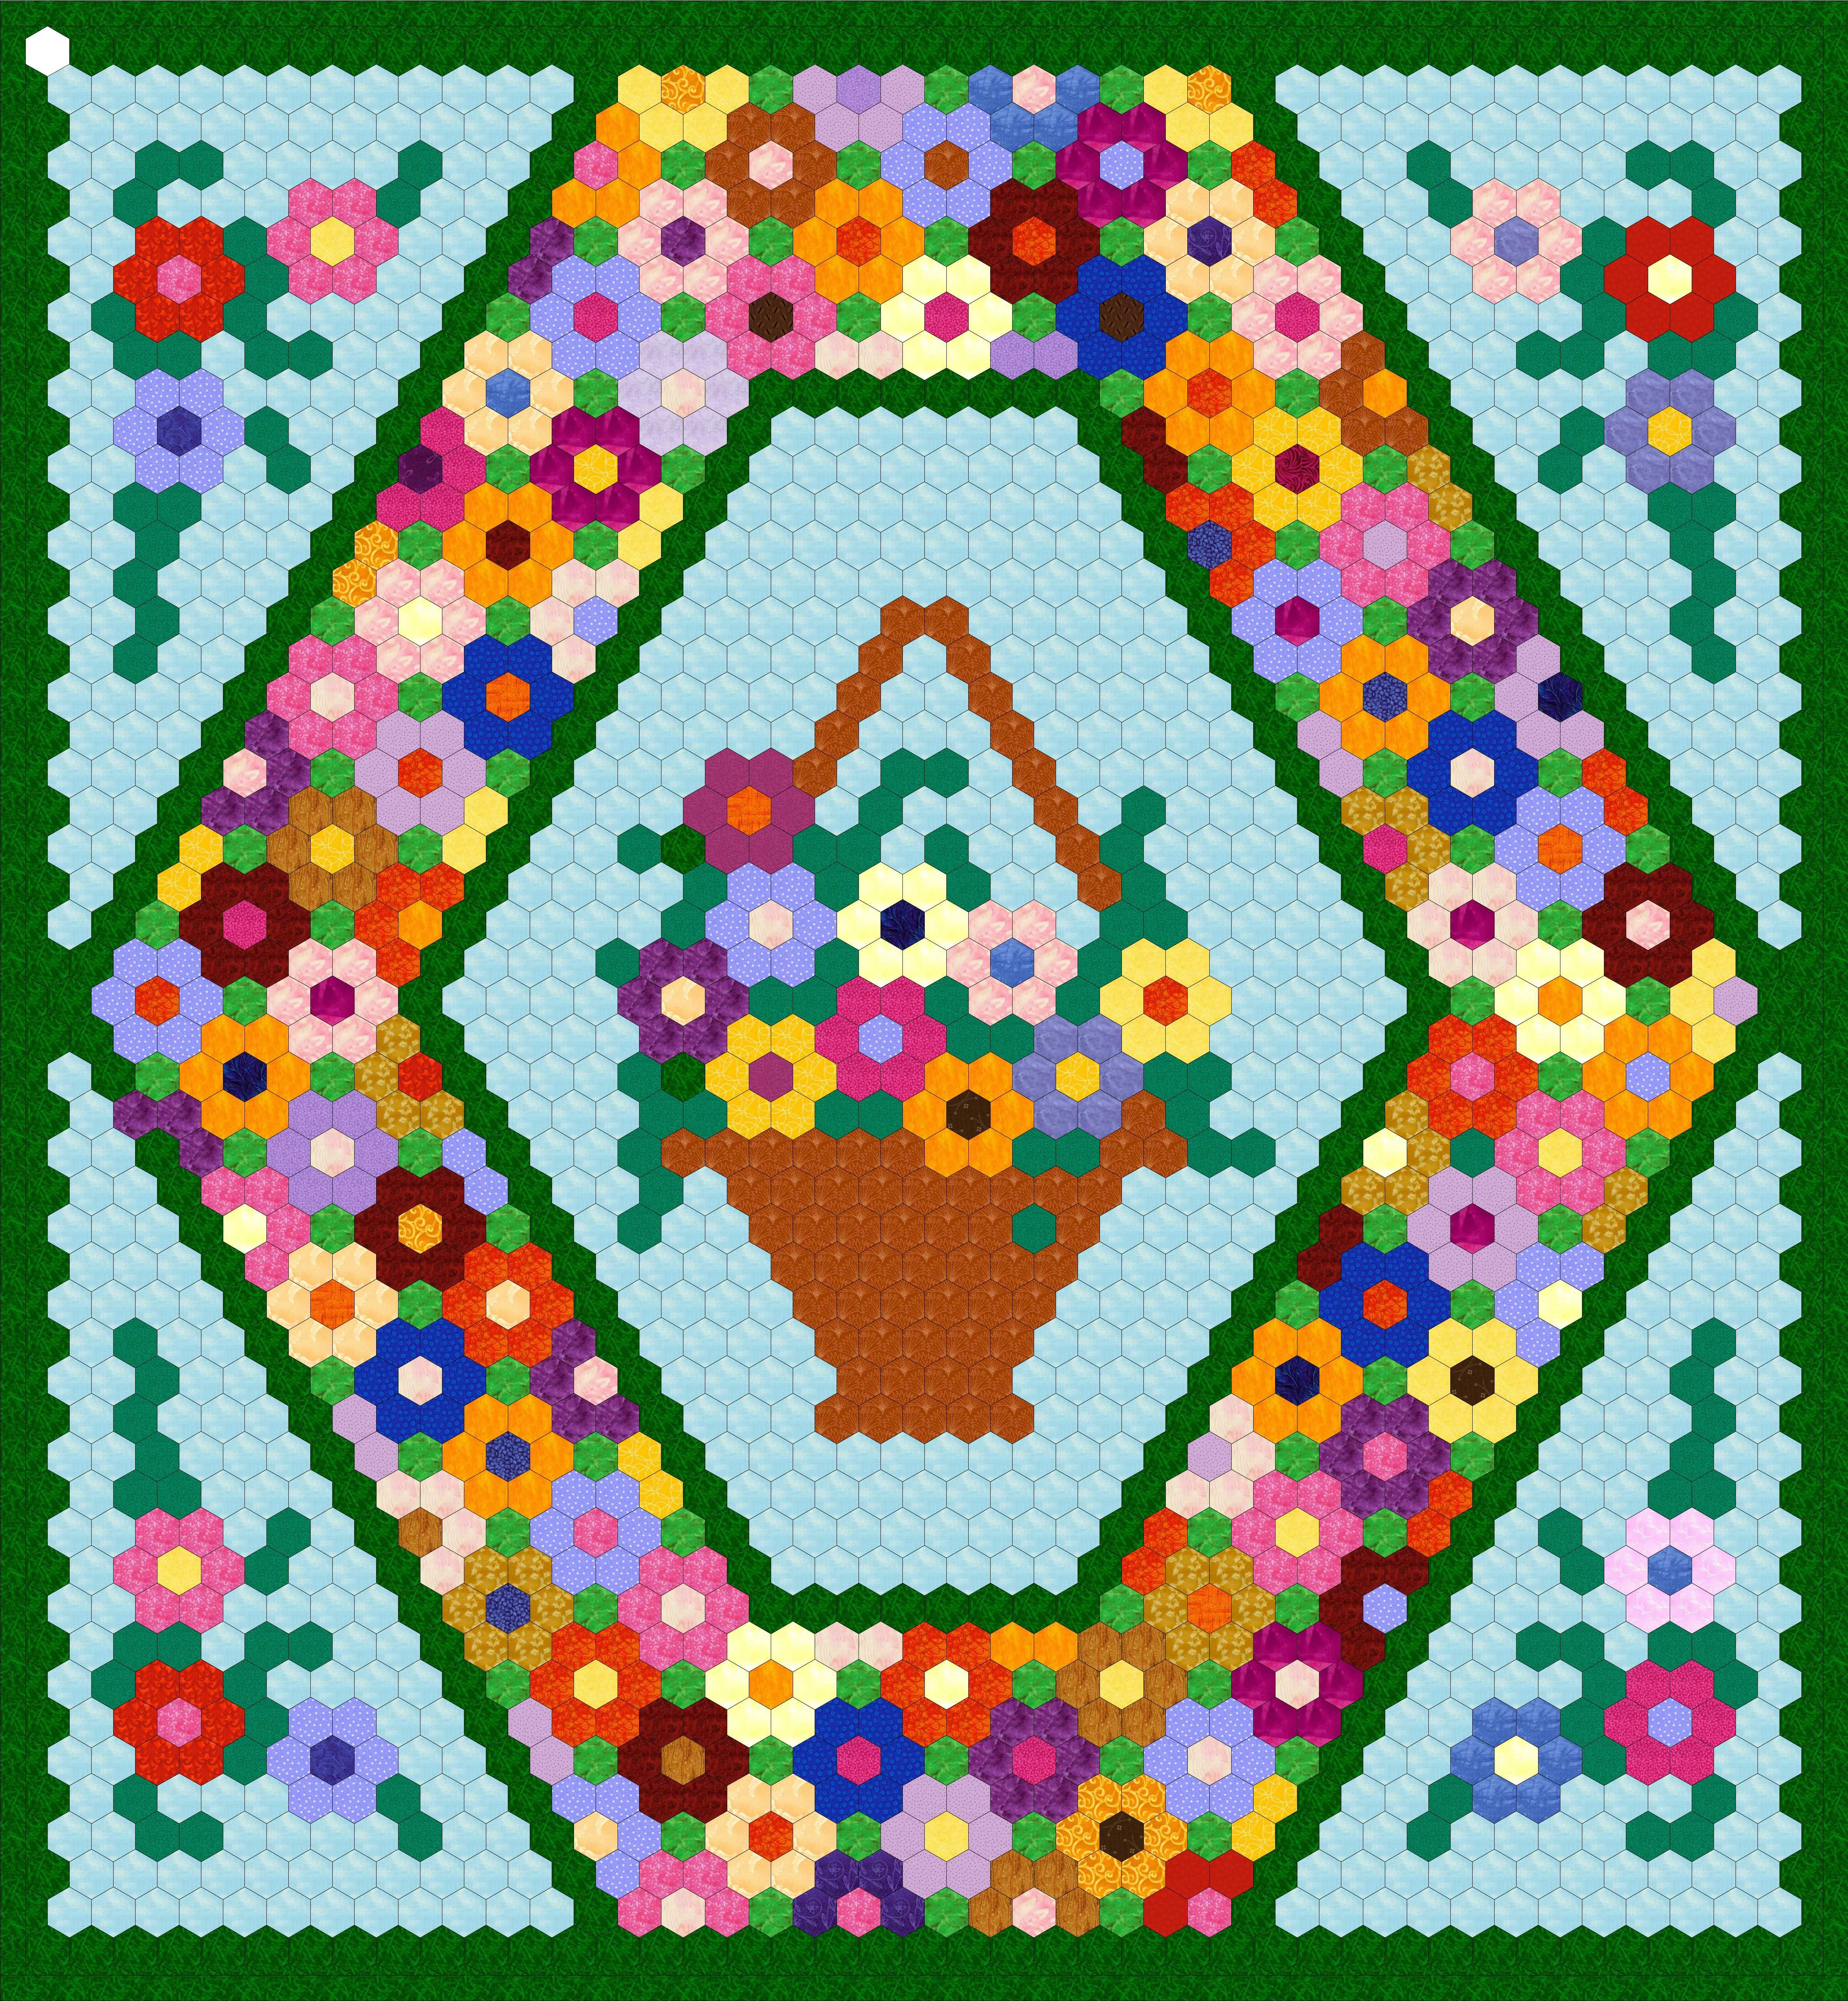 Quilting Templates Hexagon : .25 inch Hexagon Wall Hanging Project Hexagon quilting, Hexagon quilt pattern and Patterns